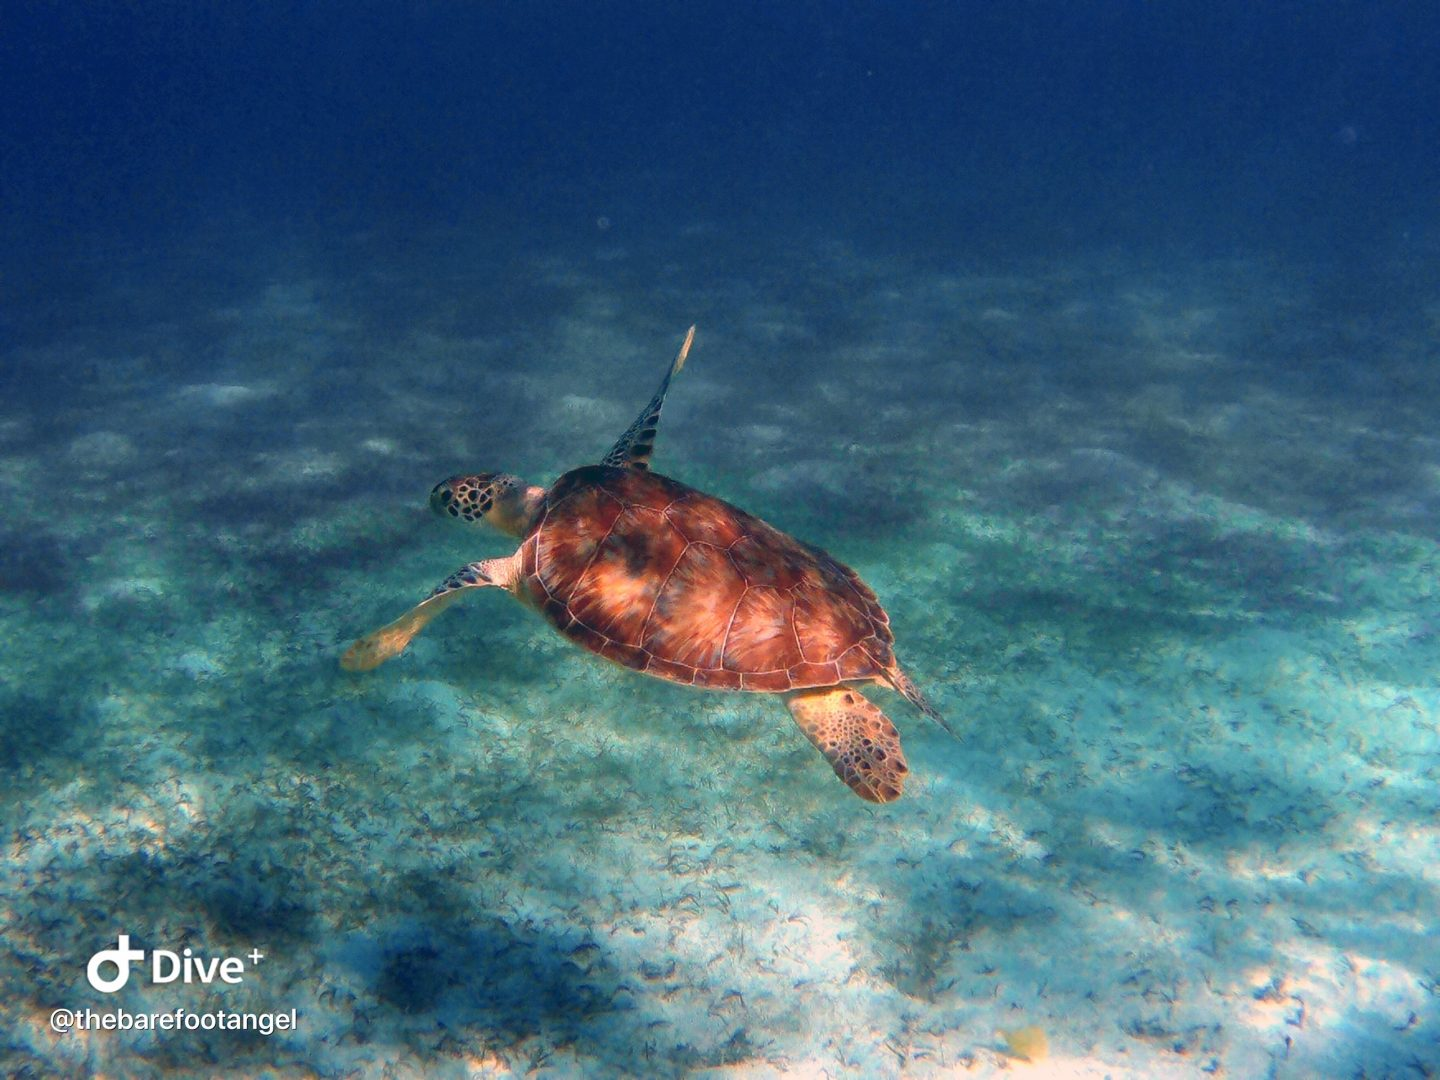 Underwater Photography Tips - Underwater turtle shot captured in the British Virgin Islands